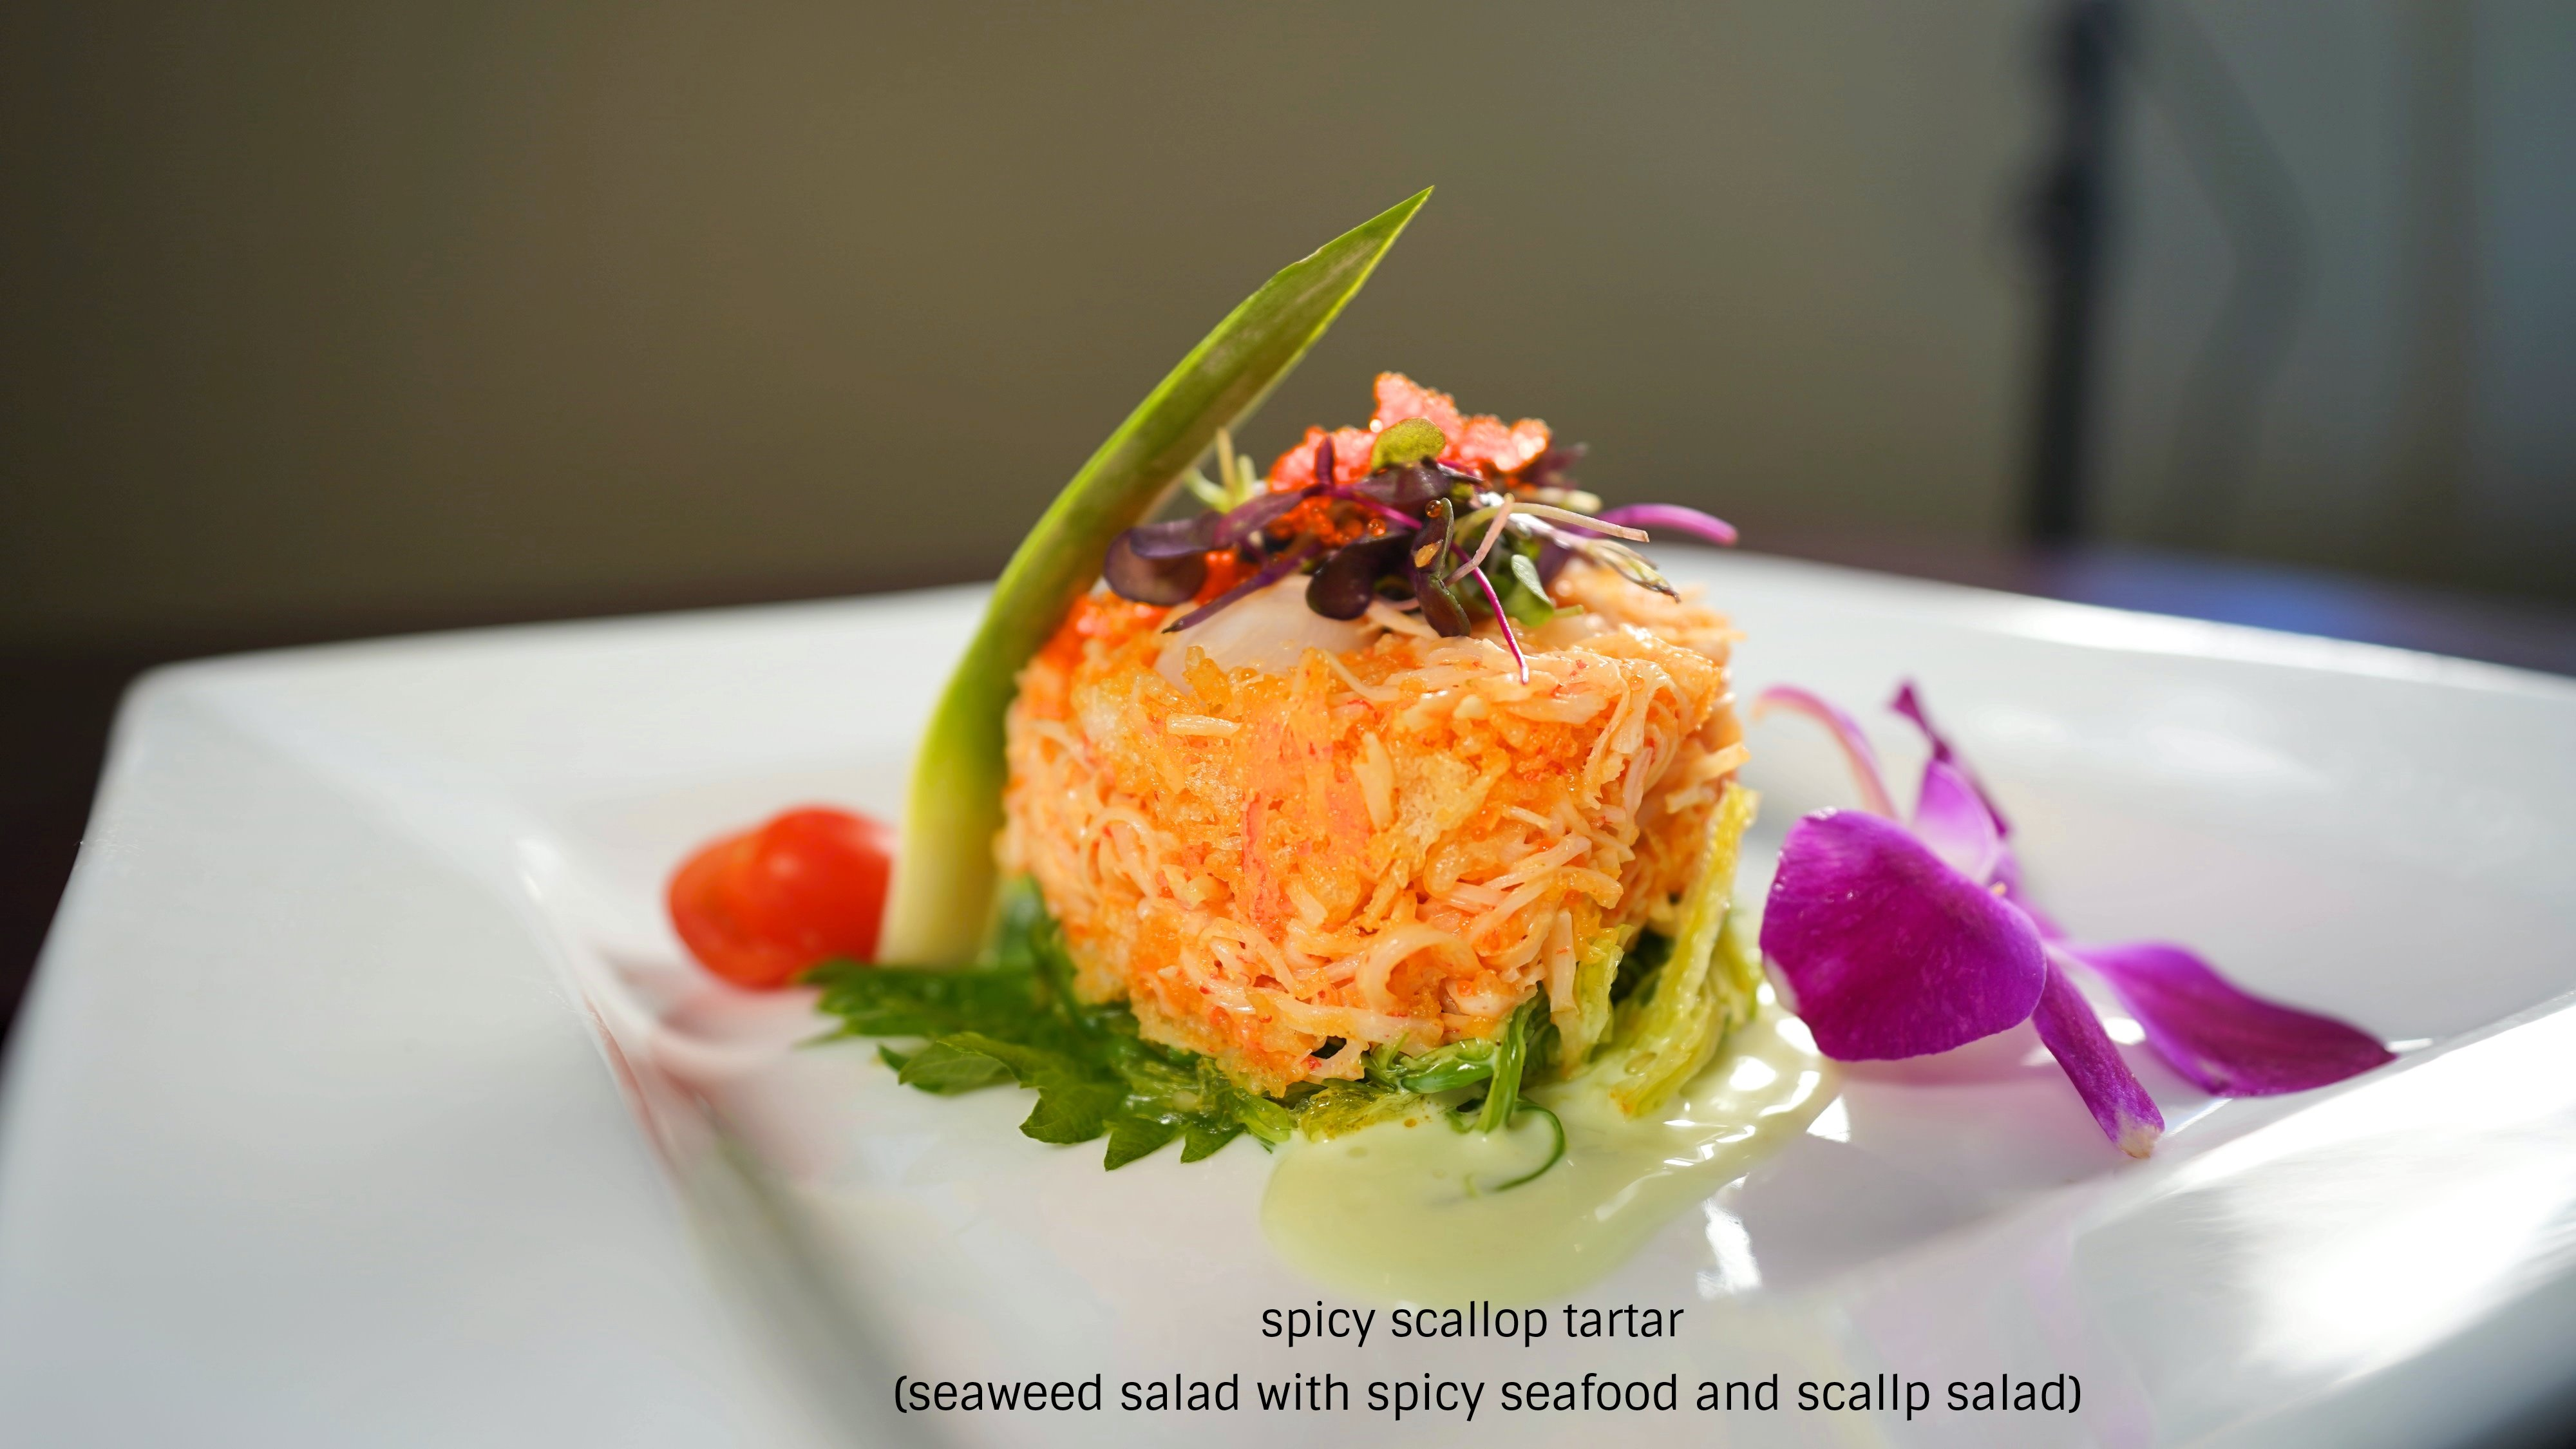 SPICY SCALLOP TARTAR